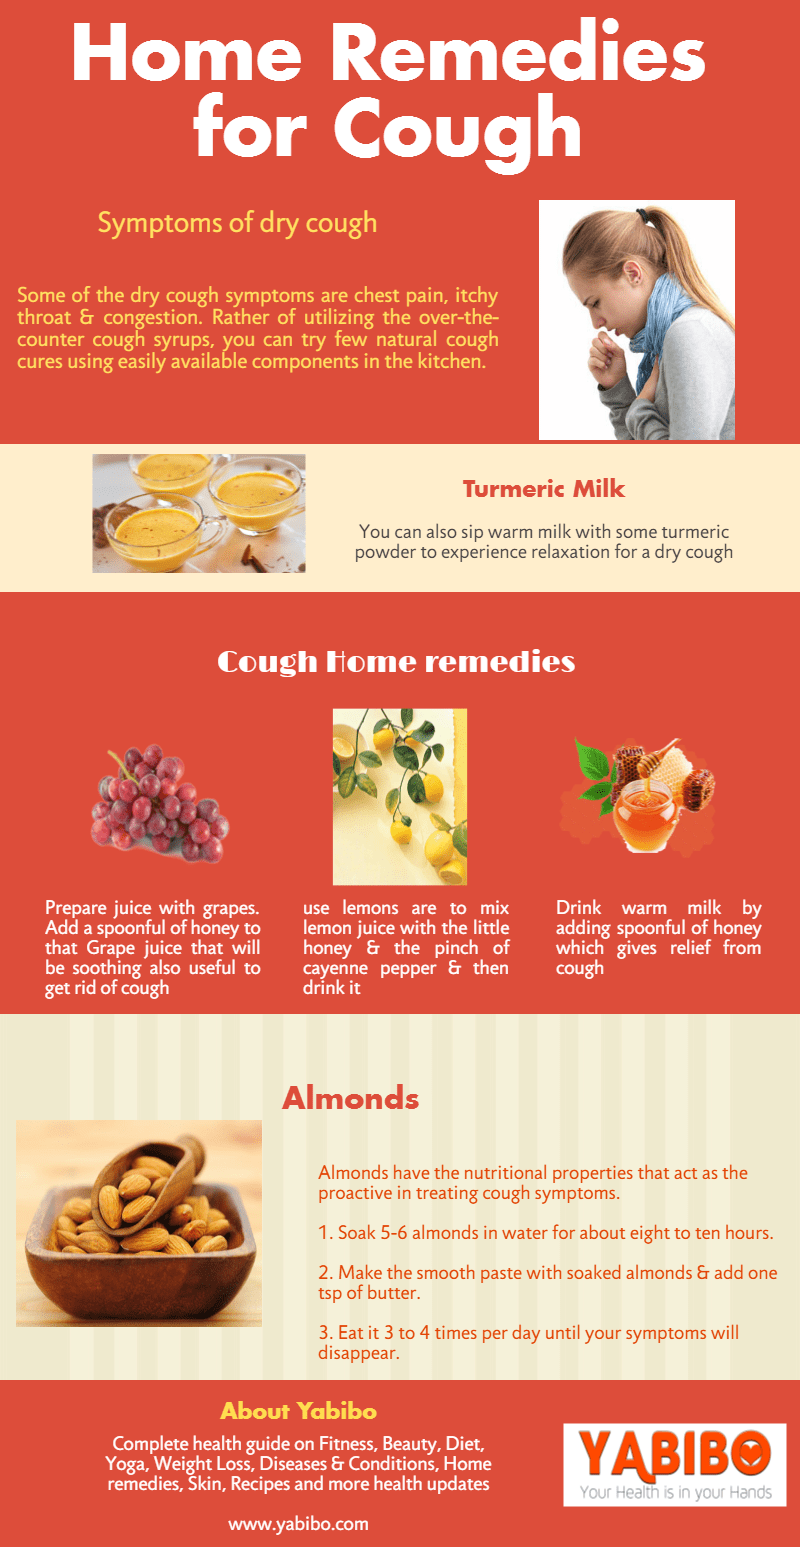 new piktochart 2 - Effective home remedies for cough